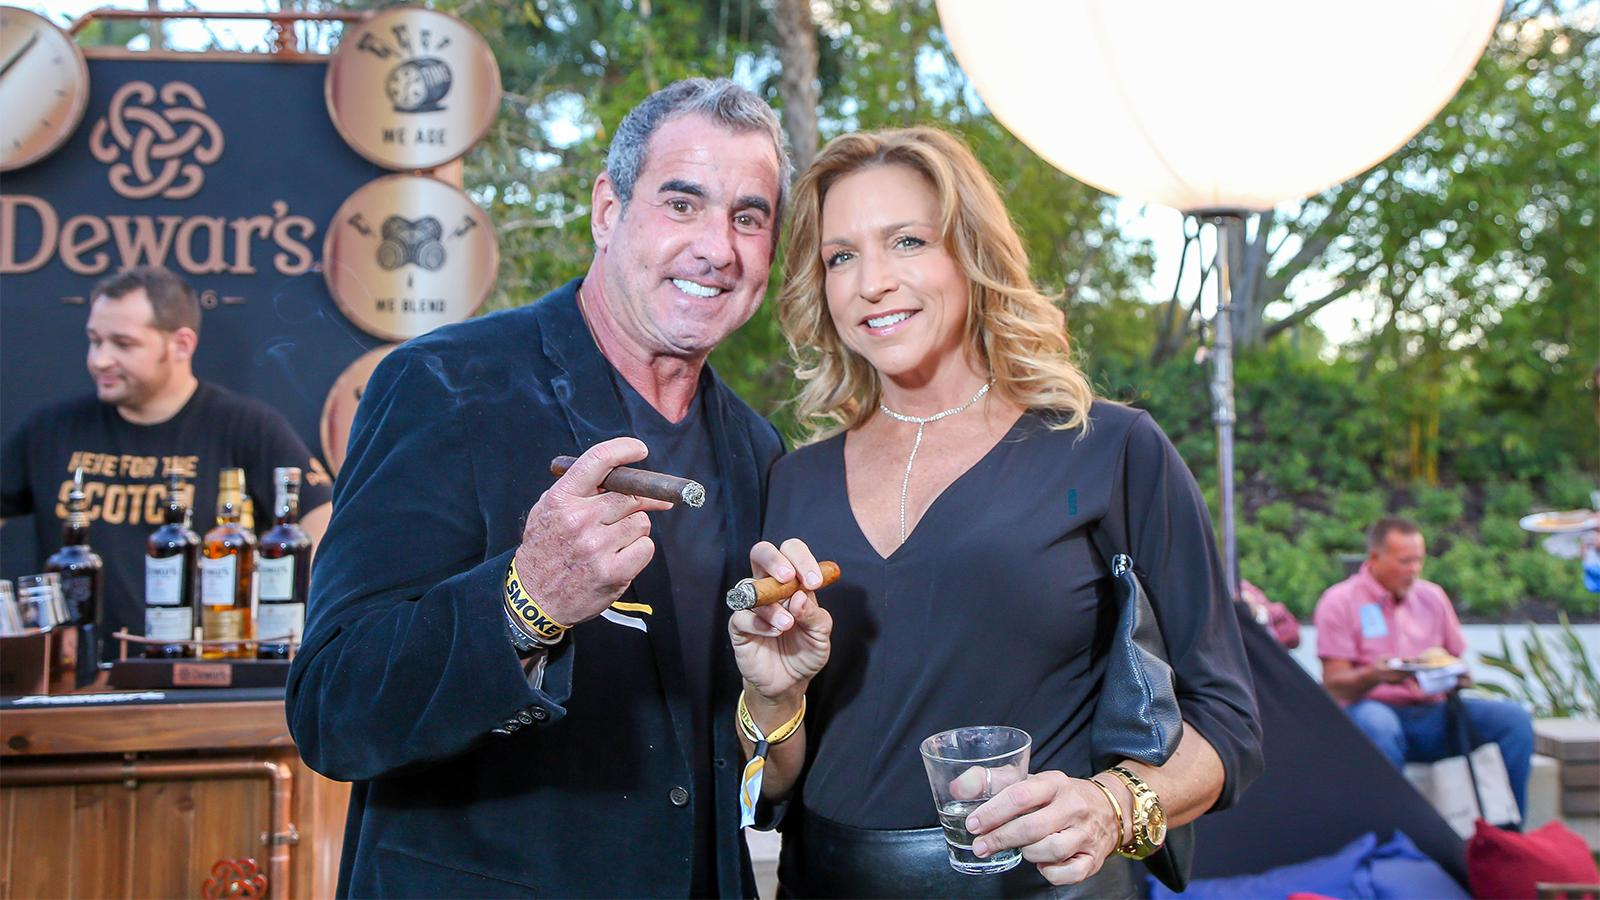 Shannon Quigley and Michael Marin enjoy a cigar with their drinks during the event.